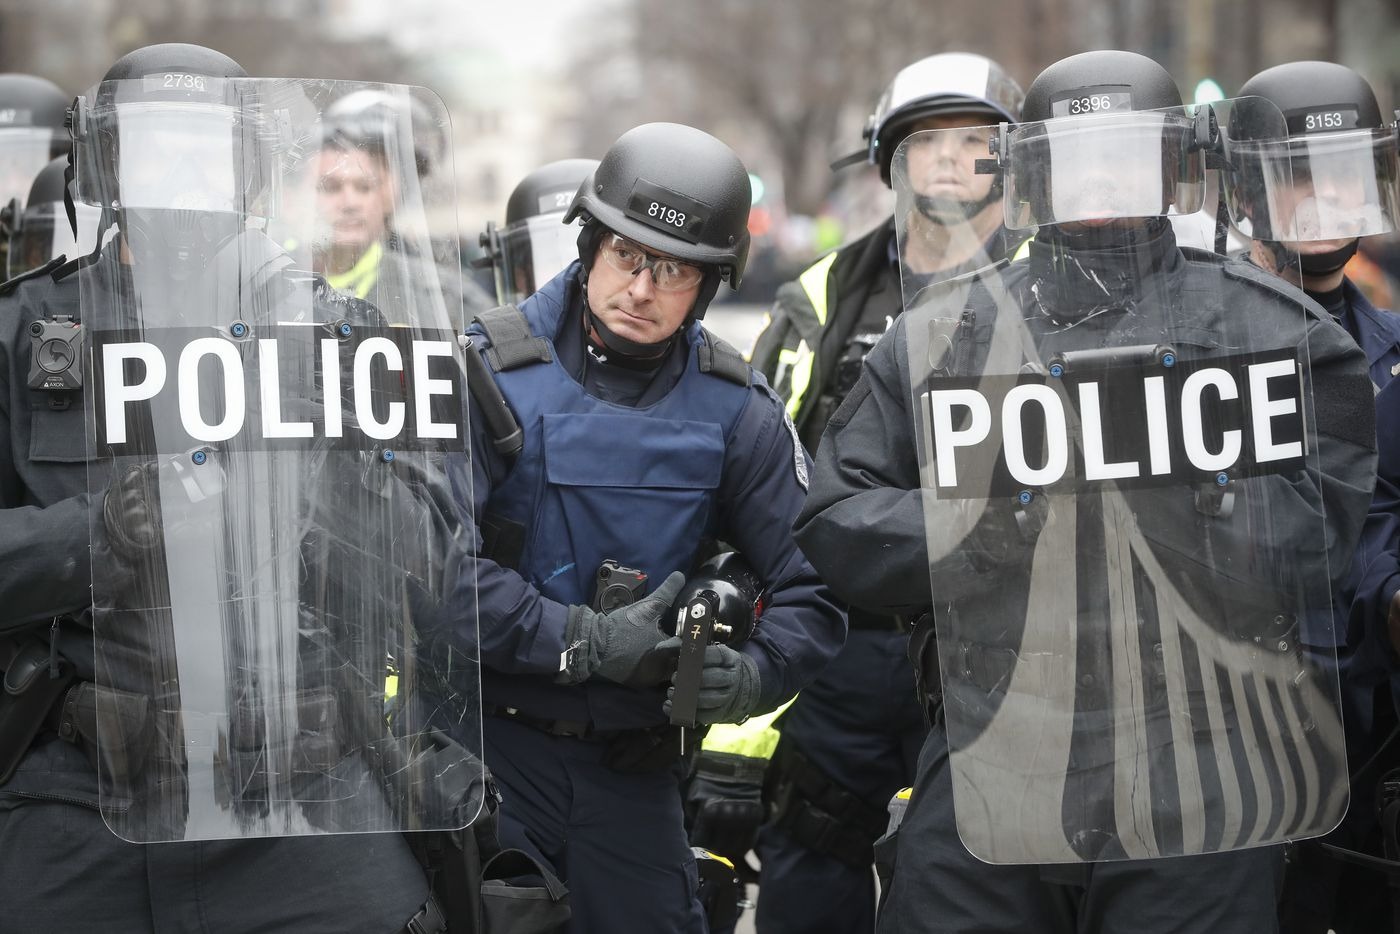 A police officer carrying a pepper spray gun stands between riot shields during a demonstration after the inauguration of President Donald Trump, Friday, Jan. 20, 2017, in Washington.